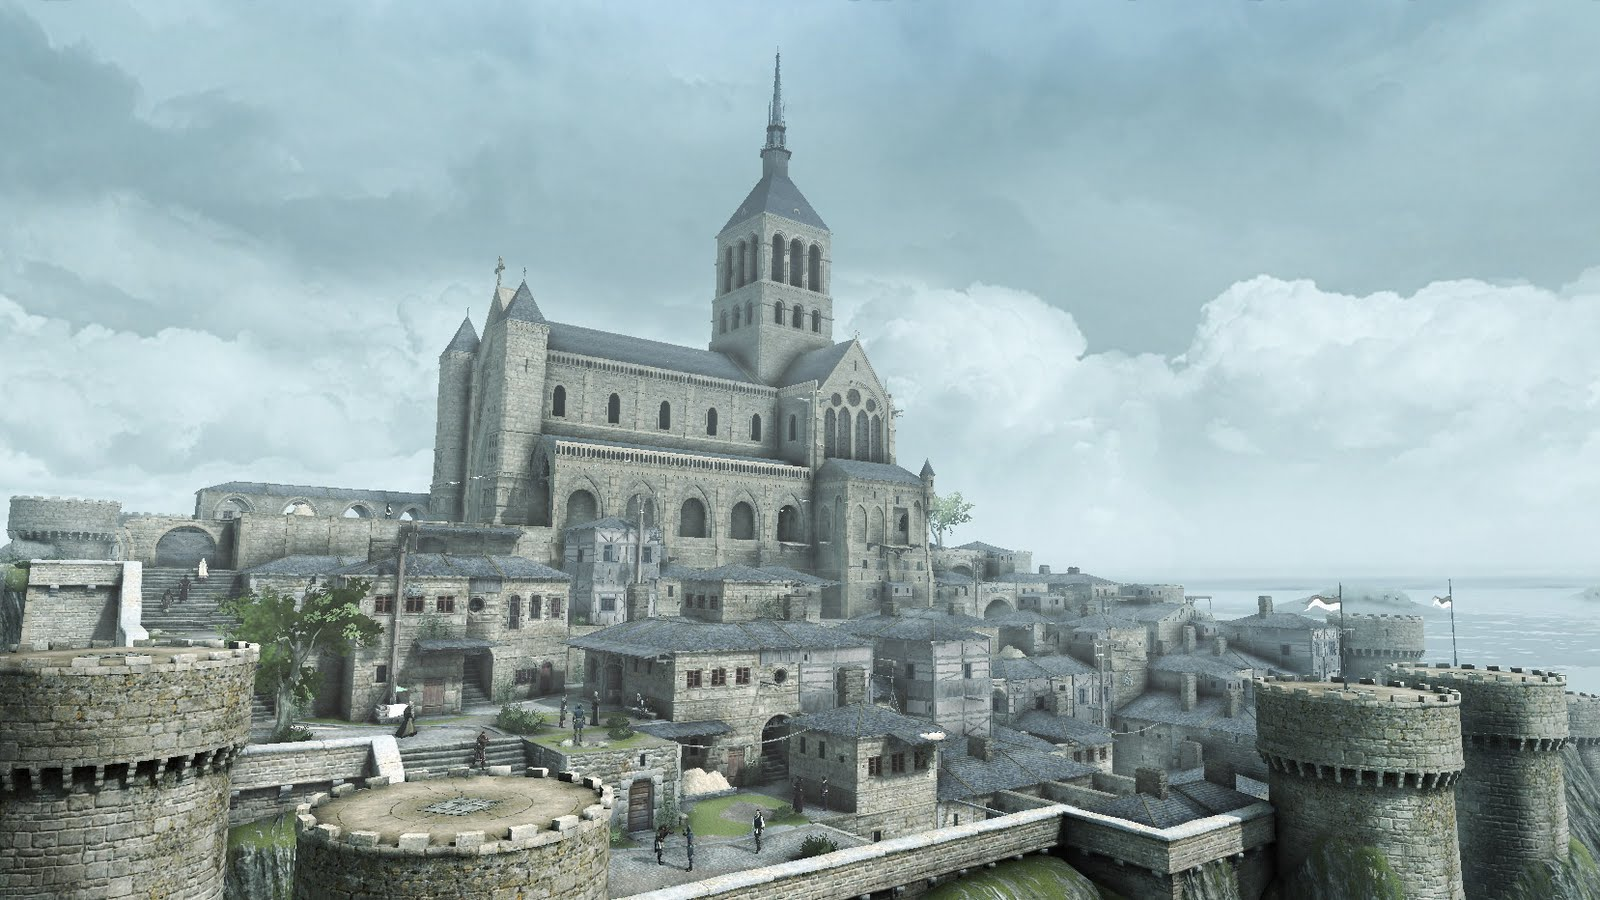 mont saint michel the assassin 39 s creed wiki assassin 39 s creed assassin 39 s creed ii assassin. Black Bedroom Furniture Sets. Home Design Ideas